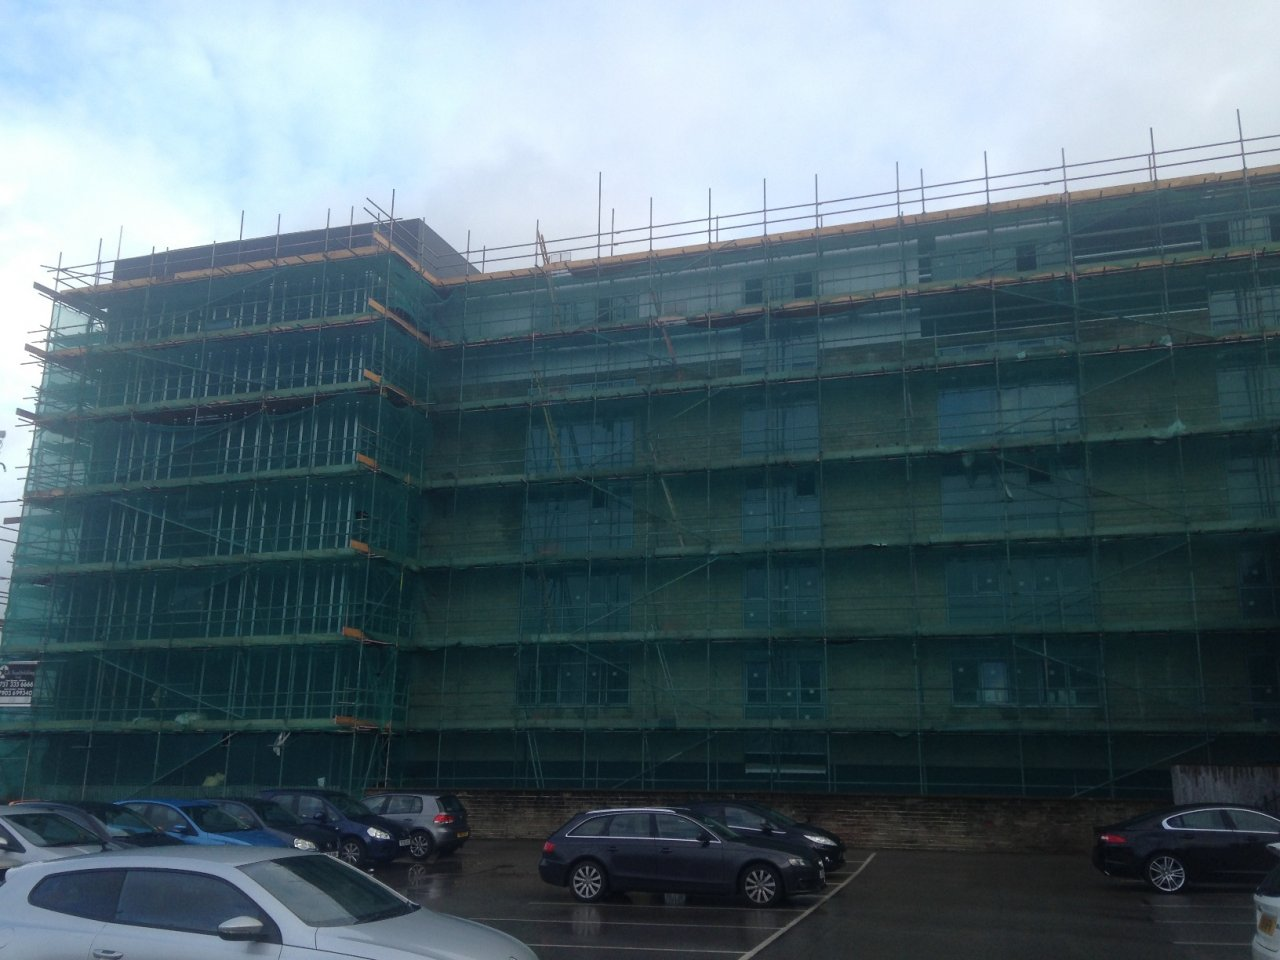 Appleton Point Student Accommodation Investment - Construction Update